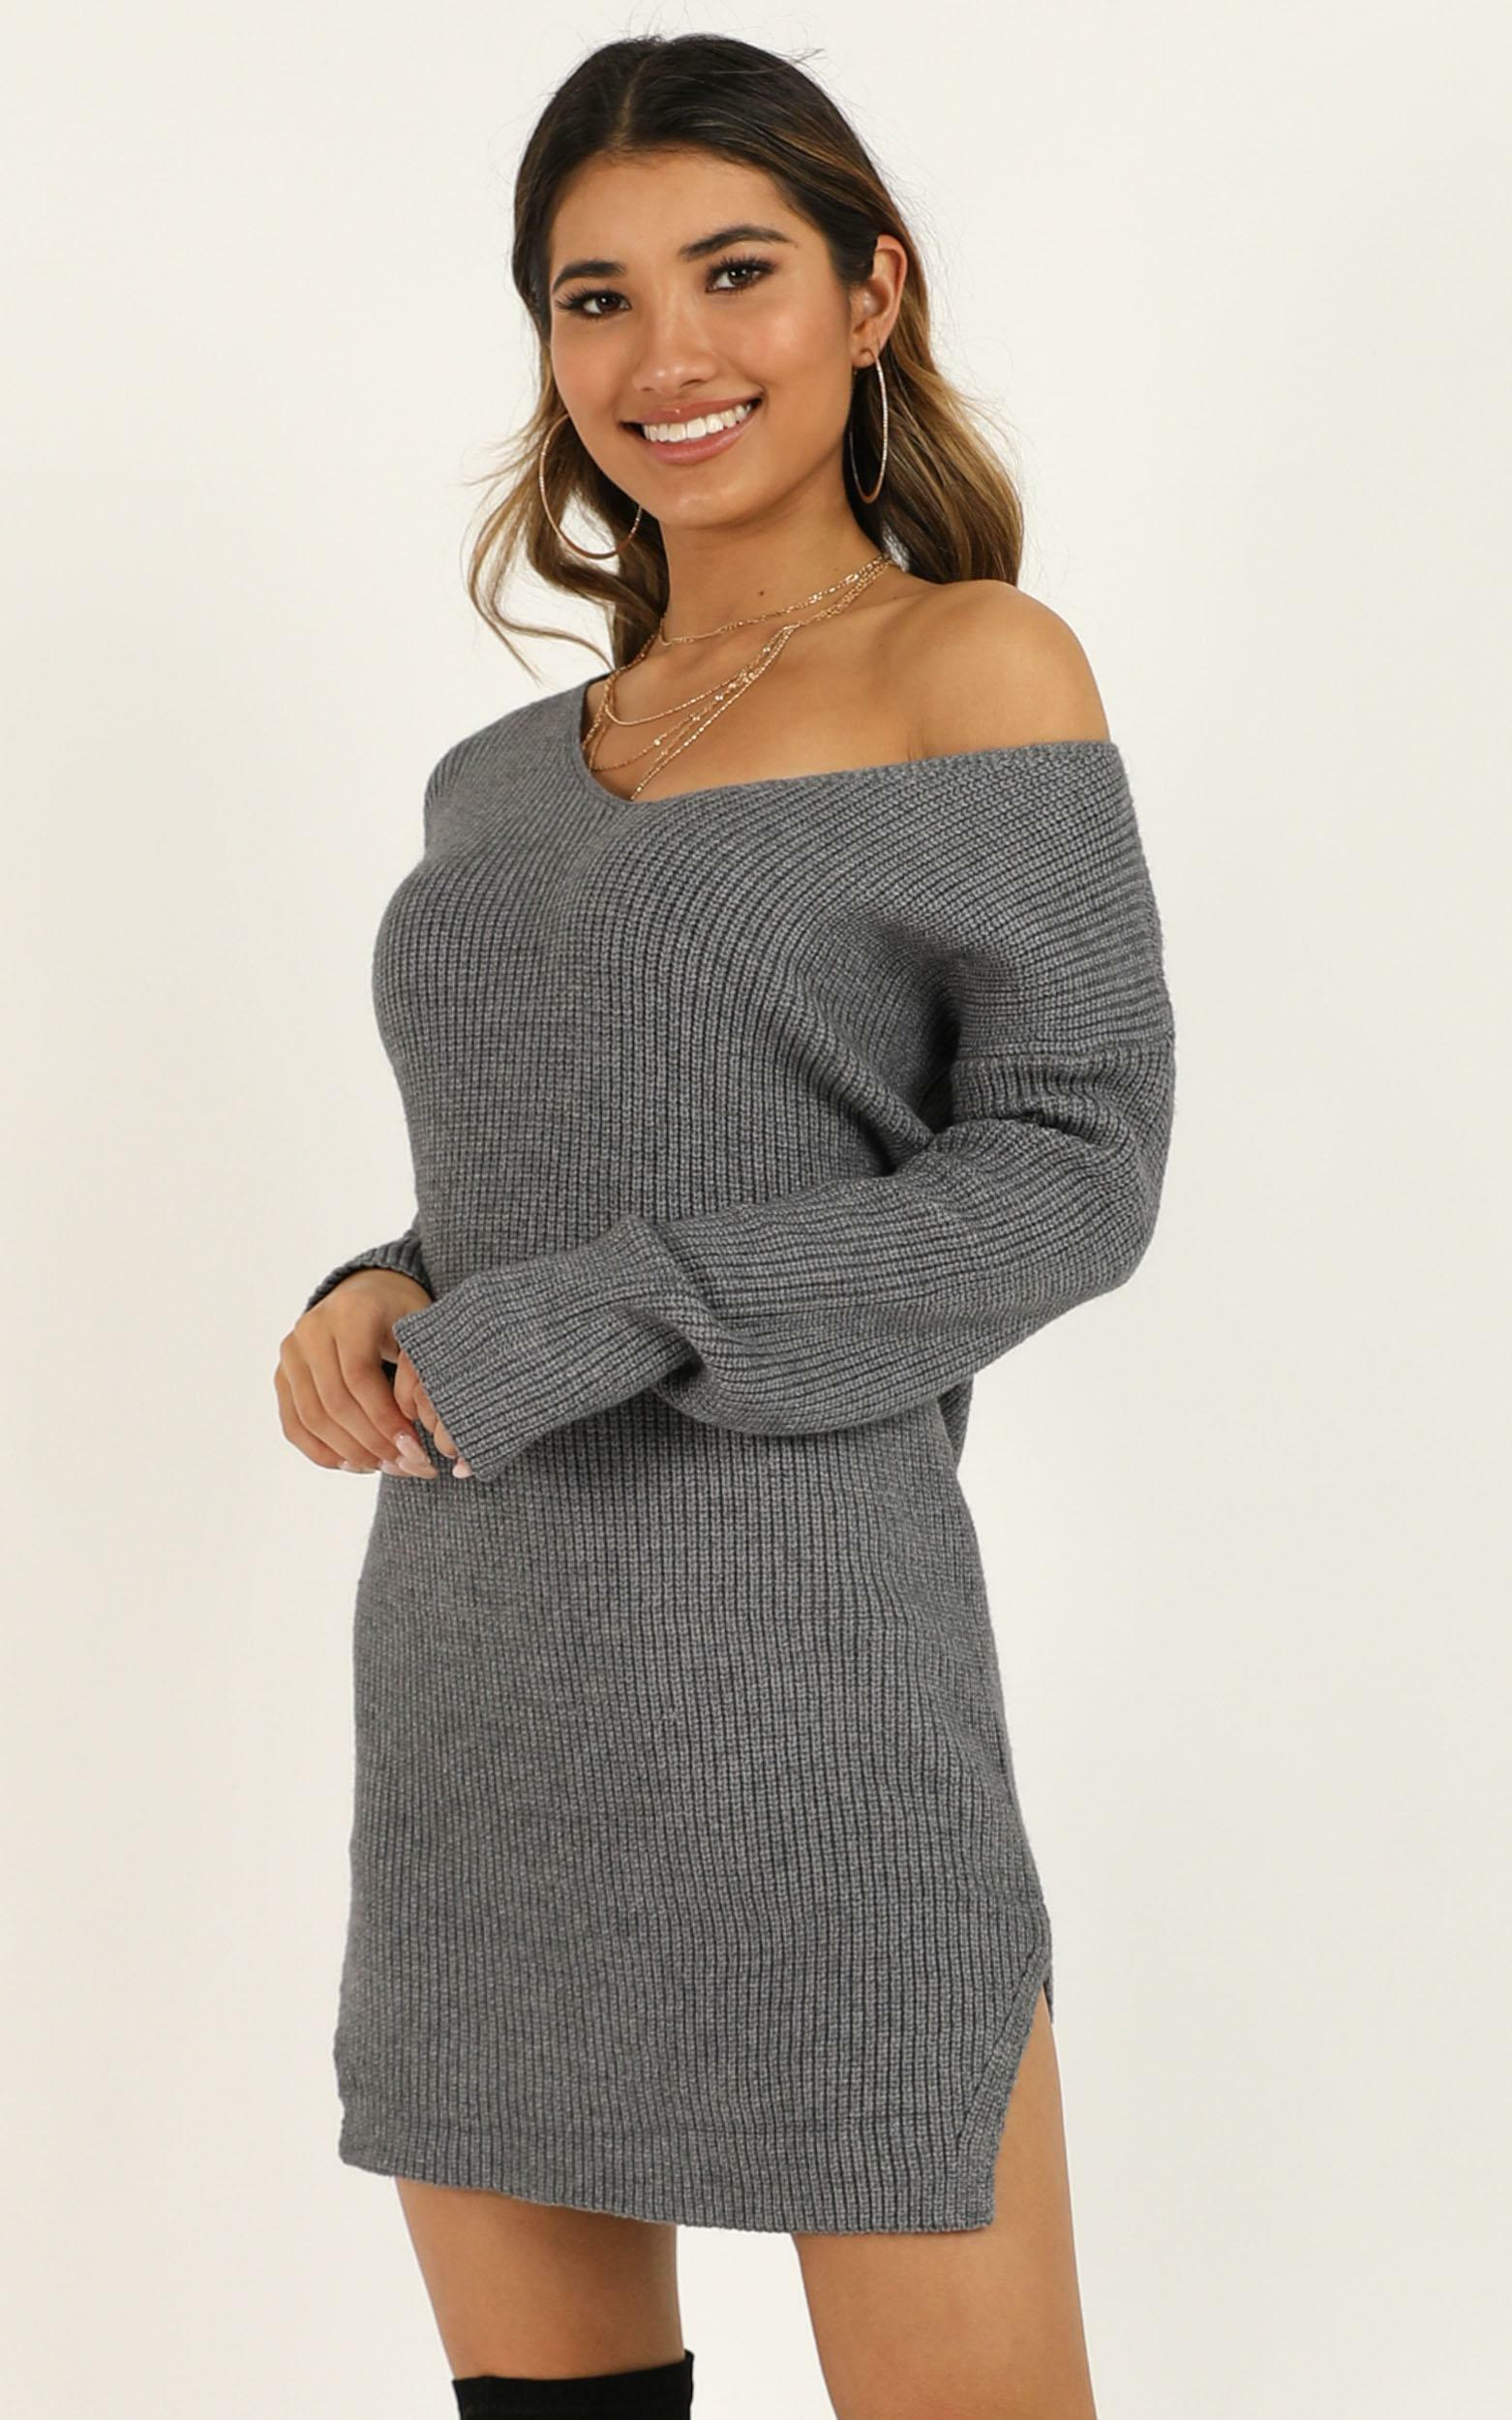 On The Floor knit dress in charcoal - M/L, Grey, hi-res image number null